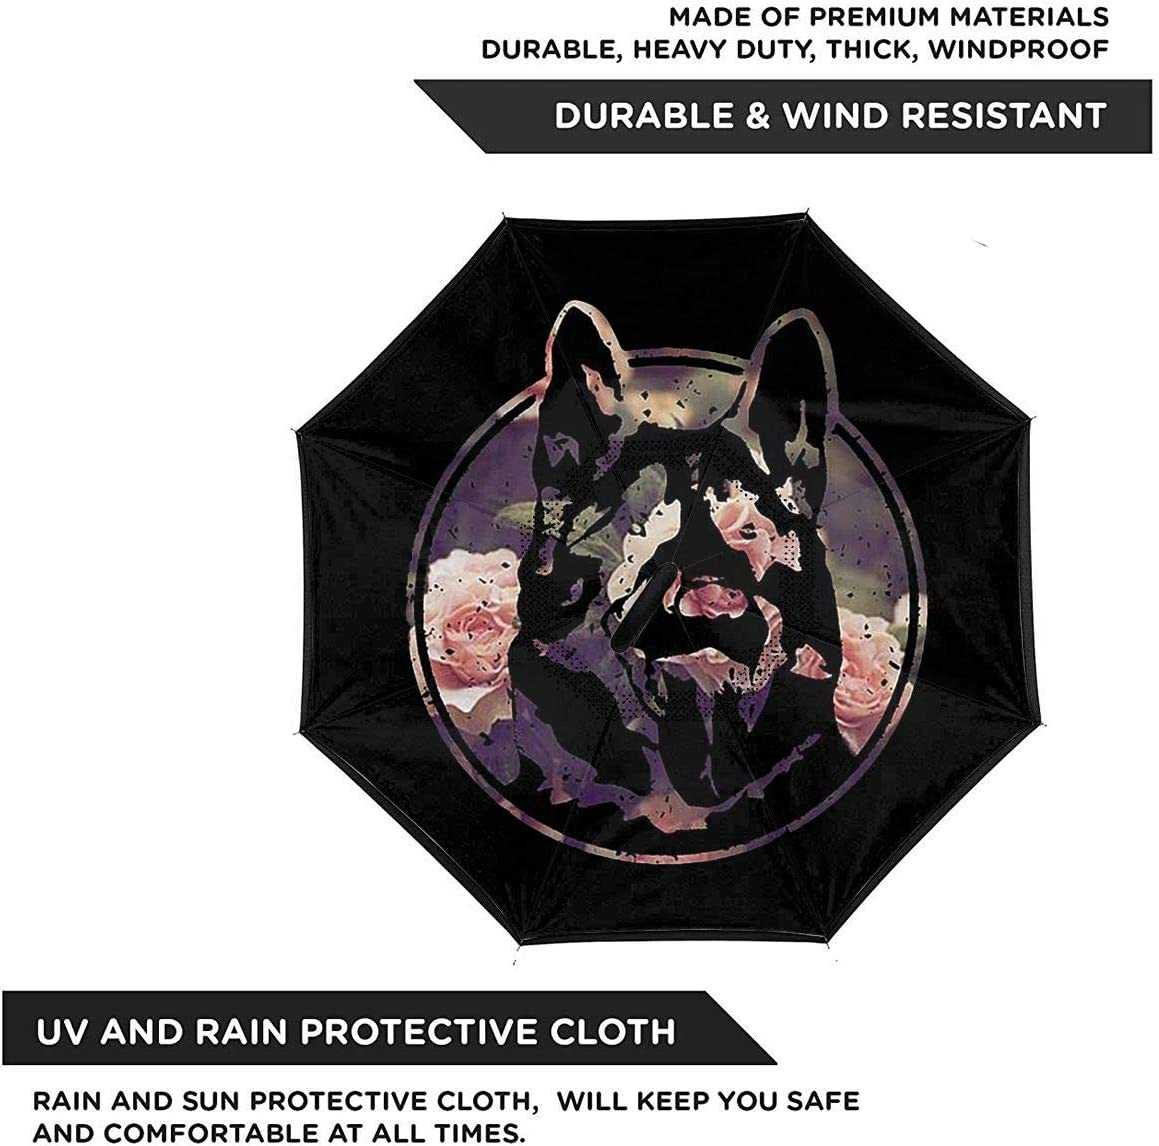 With C-Shaped Handle Windproof UV Protection Portable Reverse Umbrella Letterkenny Umbrella For Car Rain Outdoor